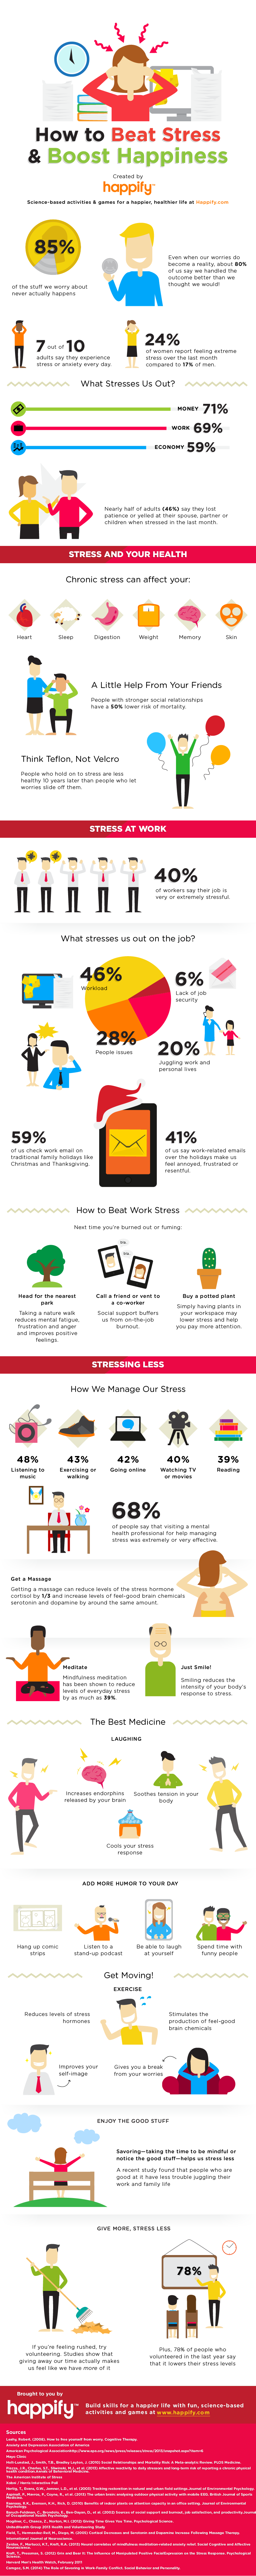 reduce stress infographic